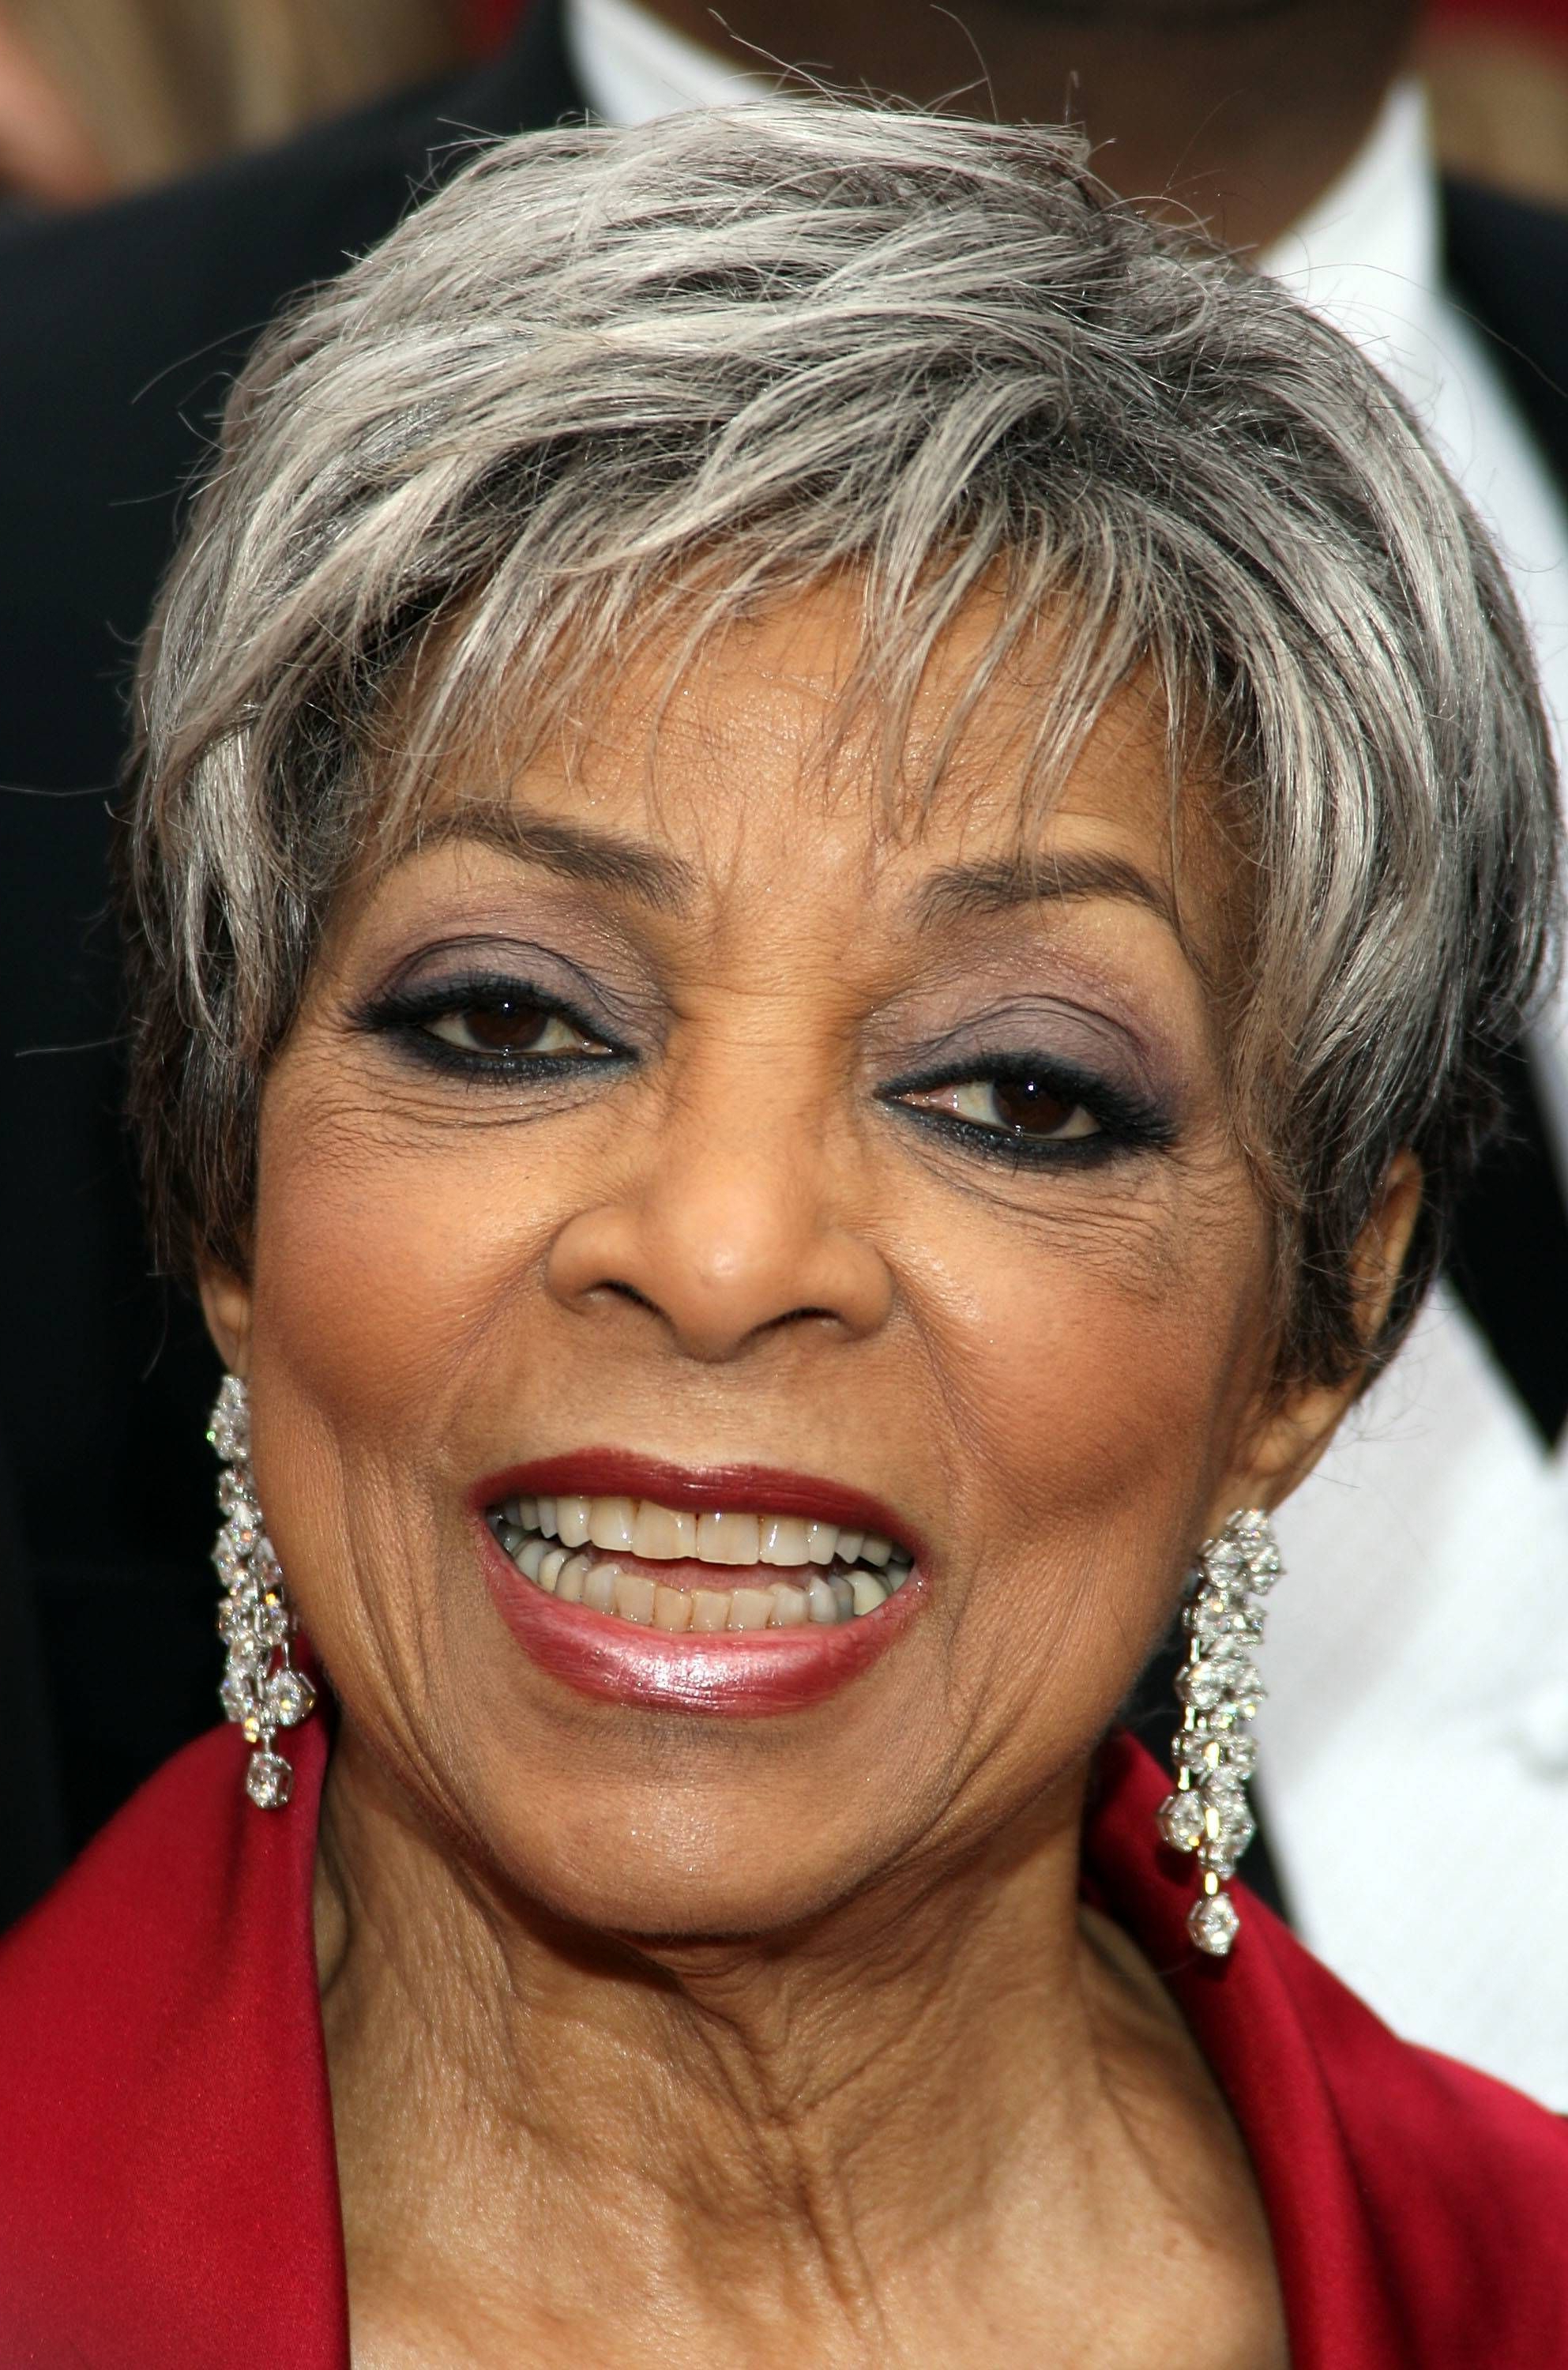 Short Hairstyle : Short Haircuts For Year Old Black Woman Styles With Short Hairstyles For 60 Year Old Woman (View 16 of 25)